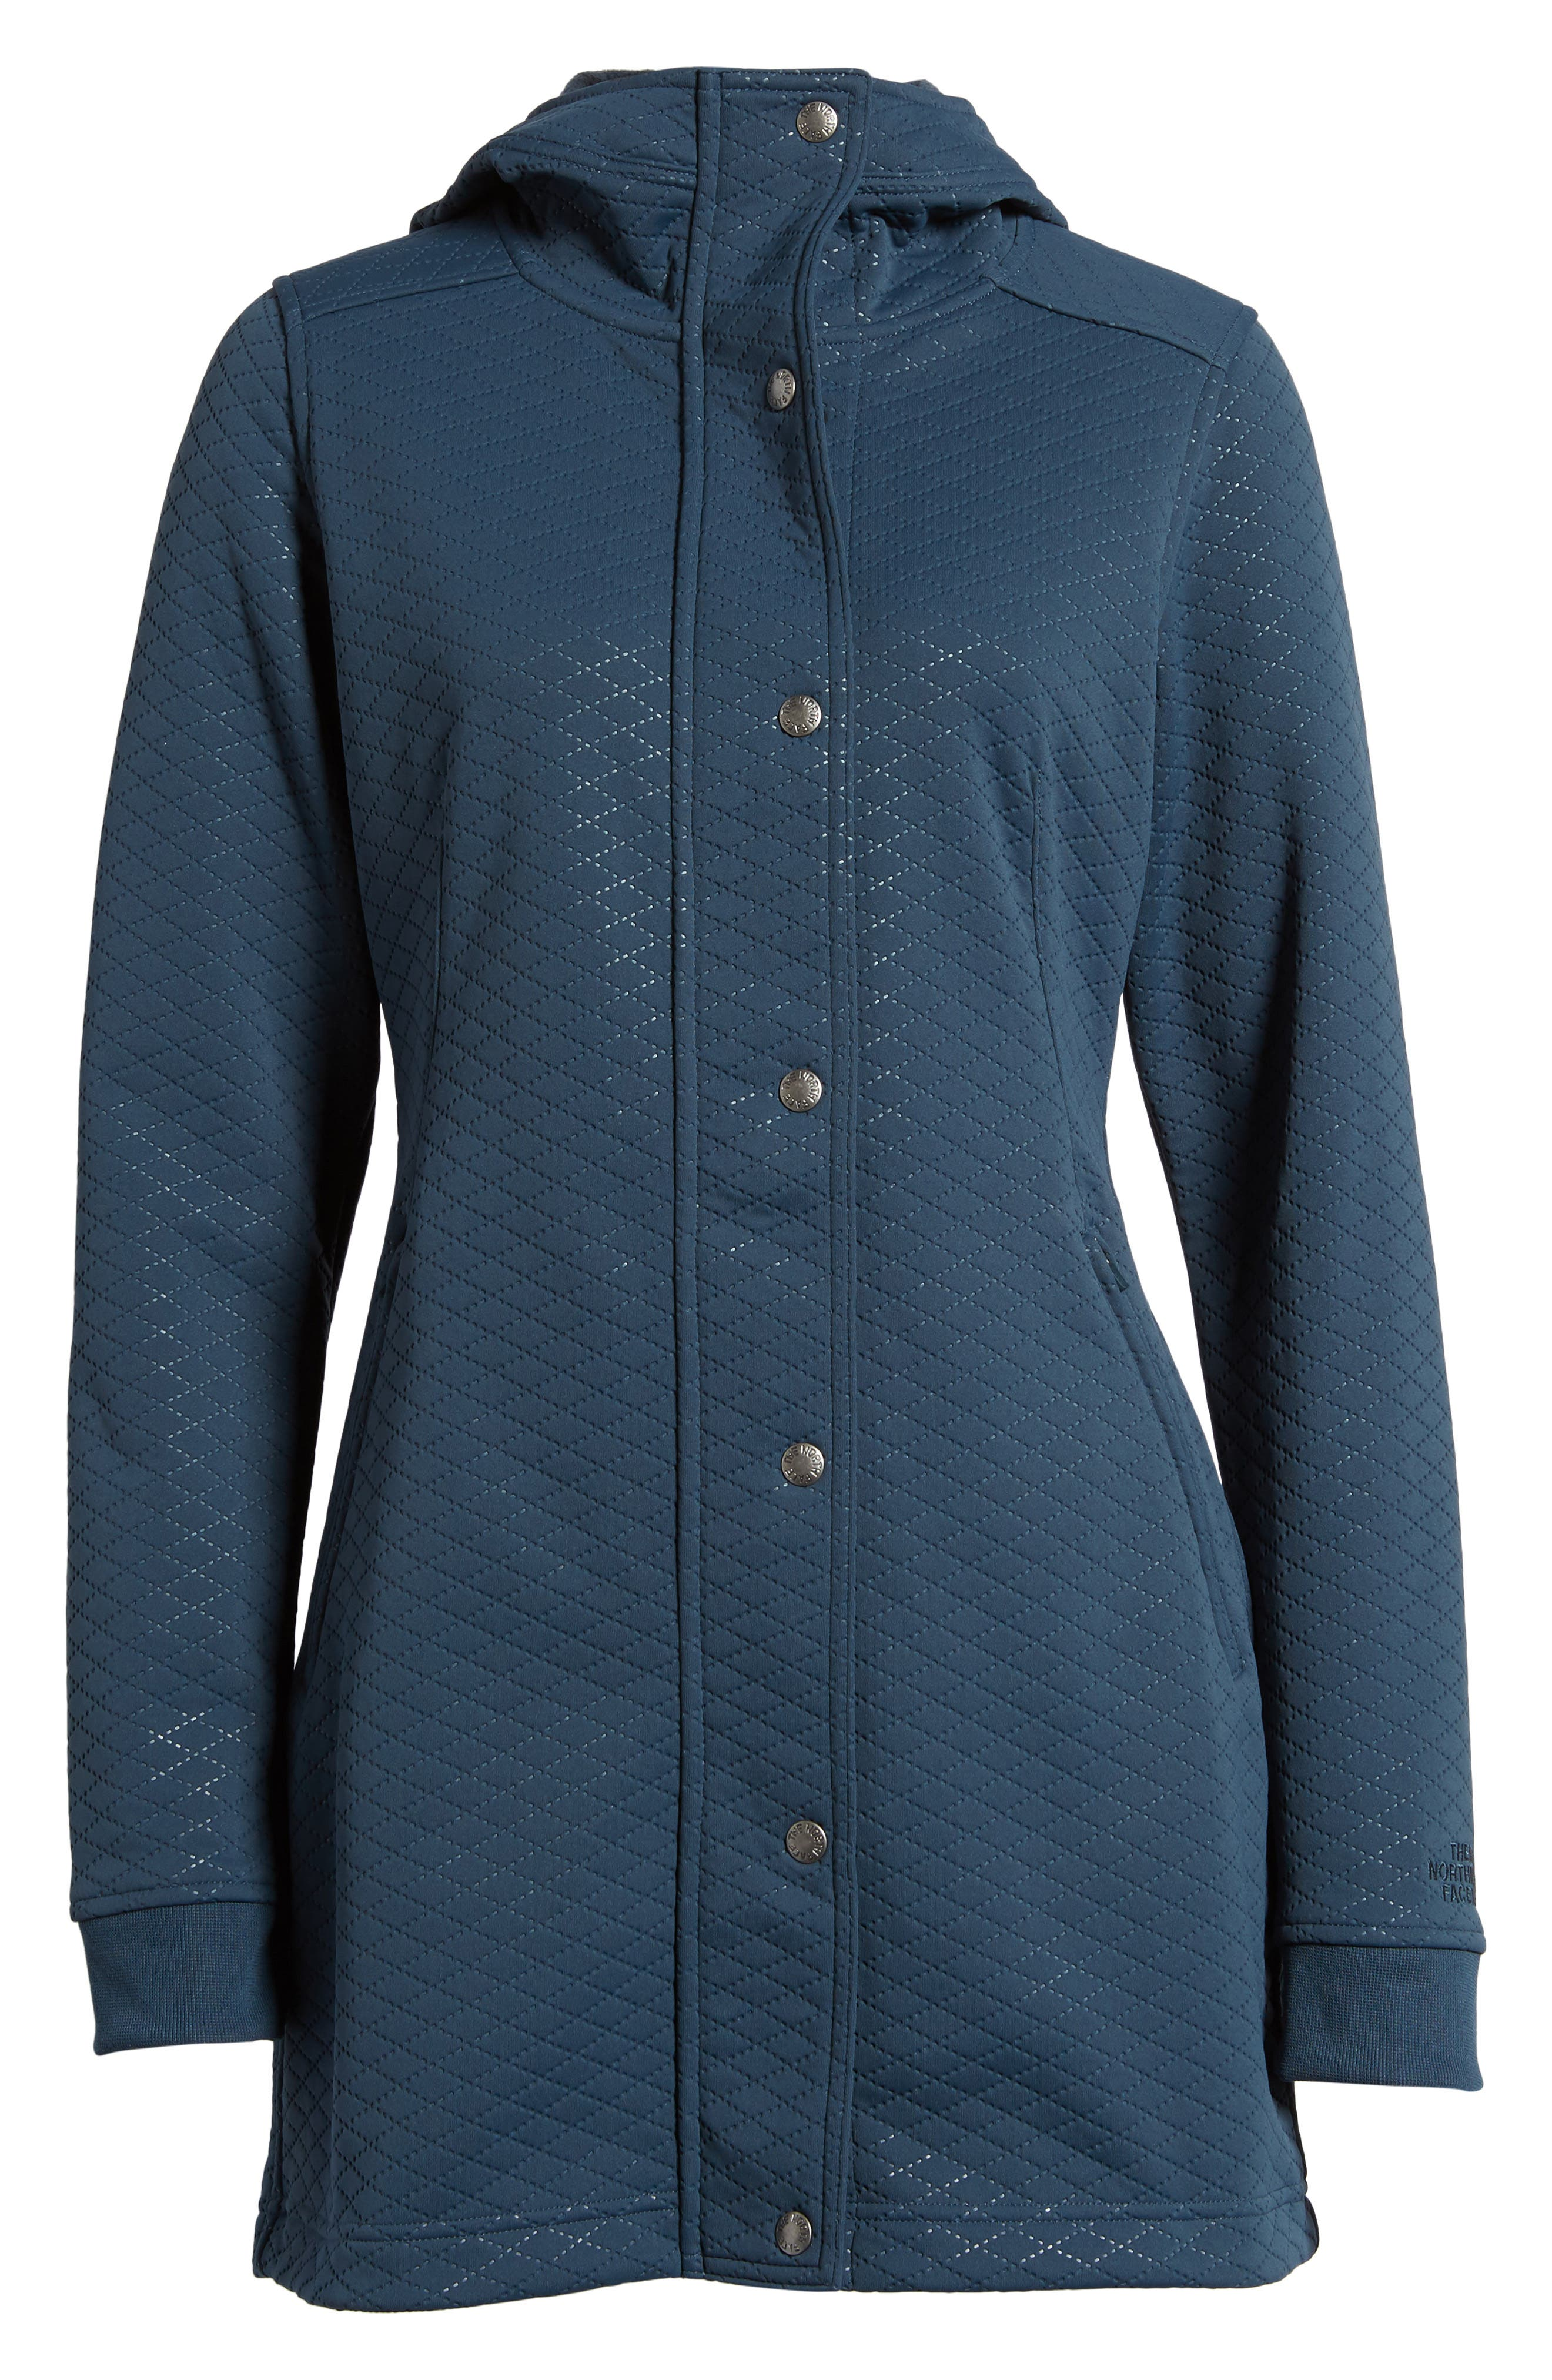 Recover-Up Jacket,                             Main thumbnail 1, color,                             Ink Blue